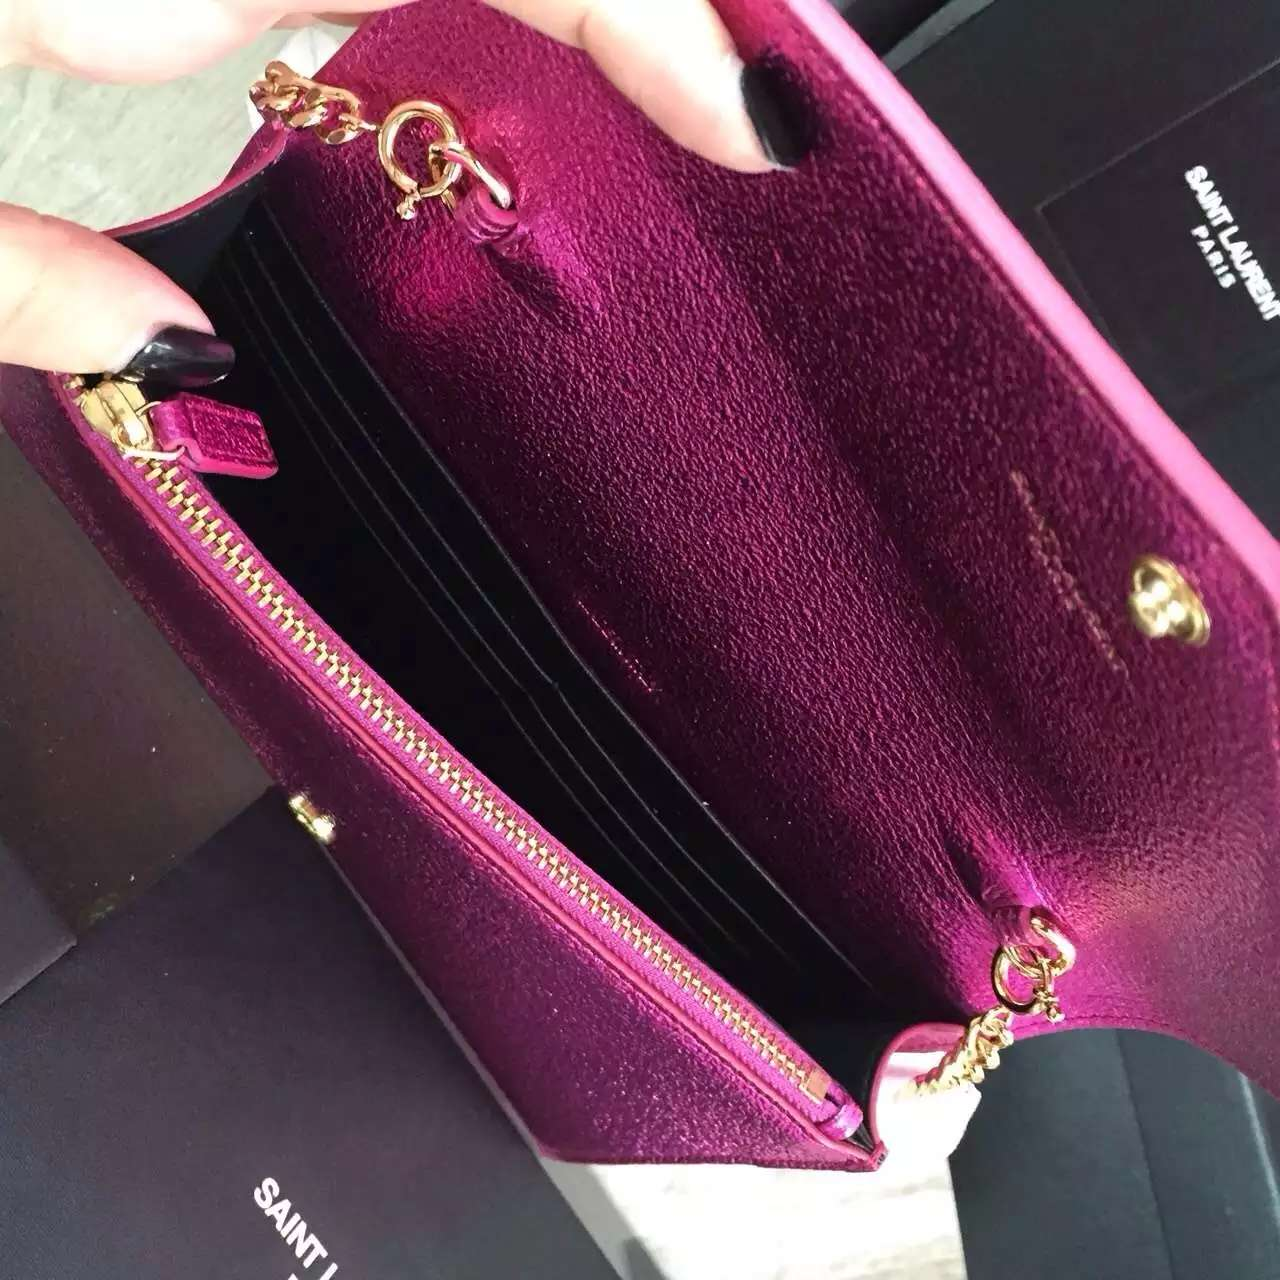 2016 Cheap YSL Out Sale with Free Shipping-Saint Laurent Monogram Envelope Chain Wallet in Rose Grain Leather